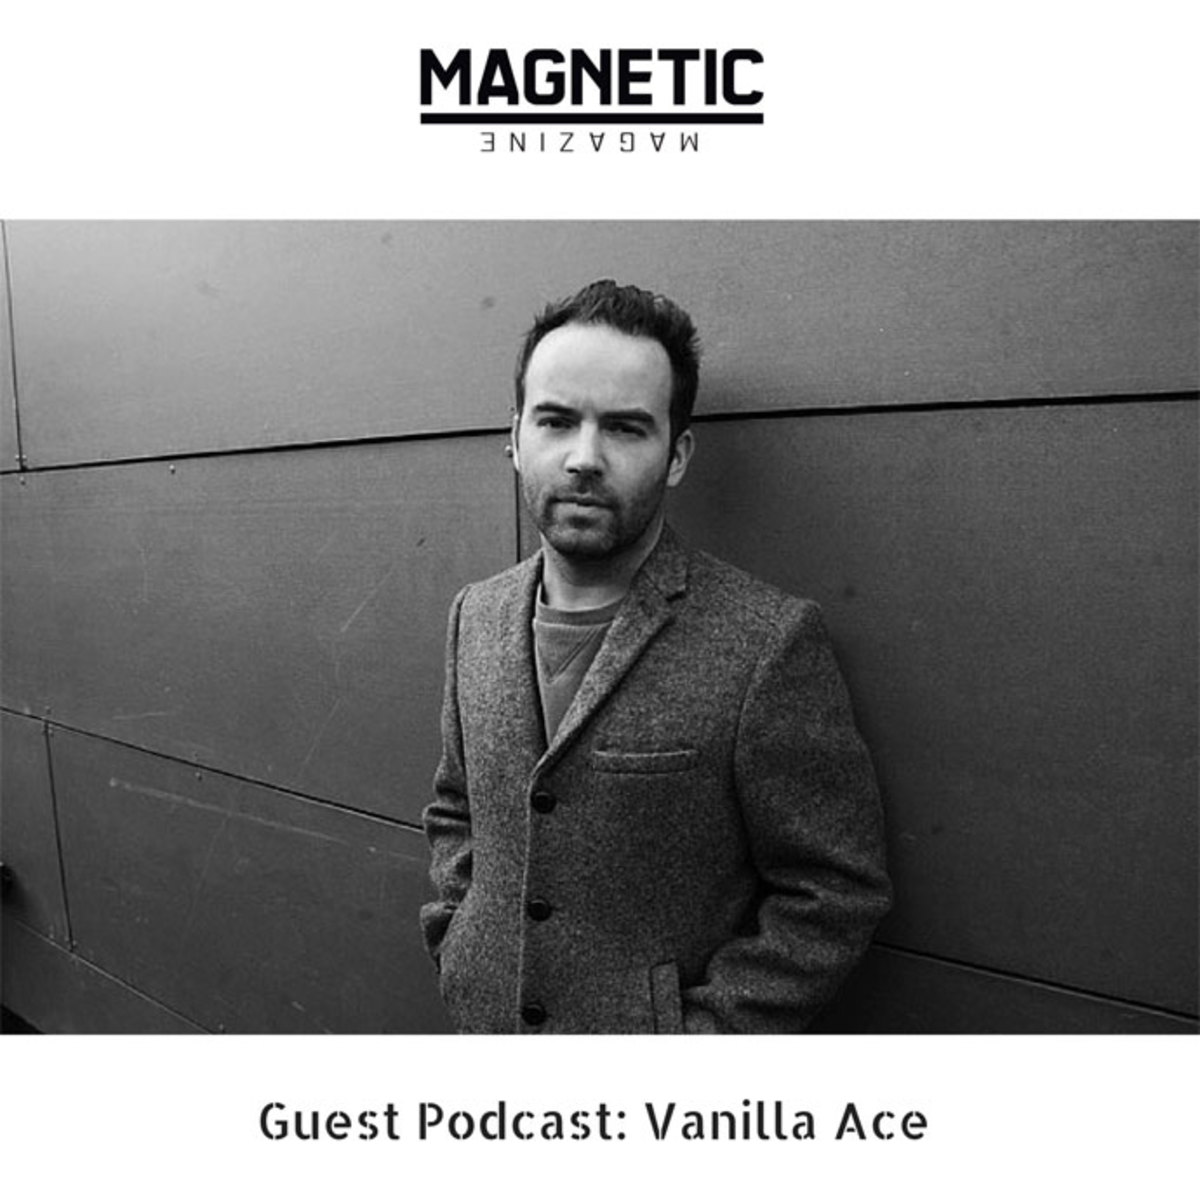 Magnetic Magazine Guest Podcast - Vanilla Ace